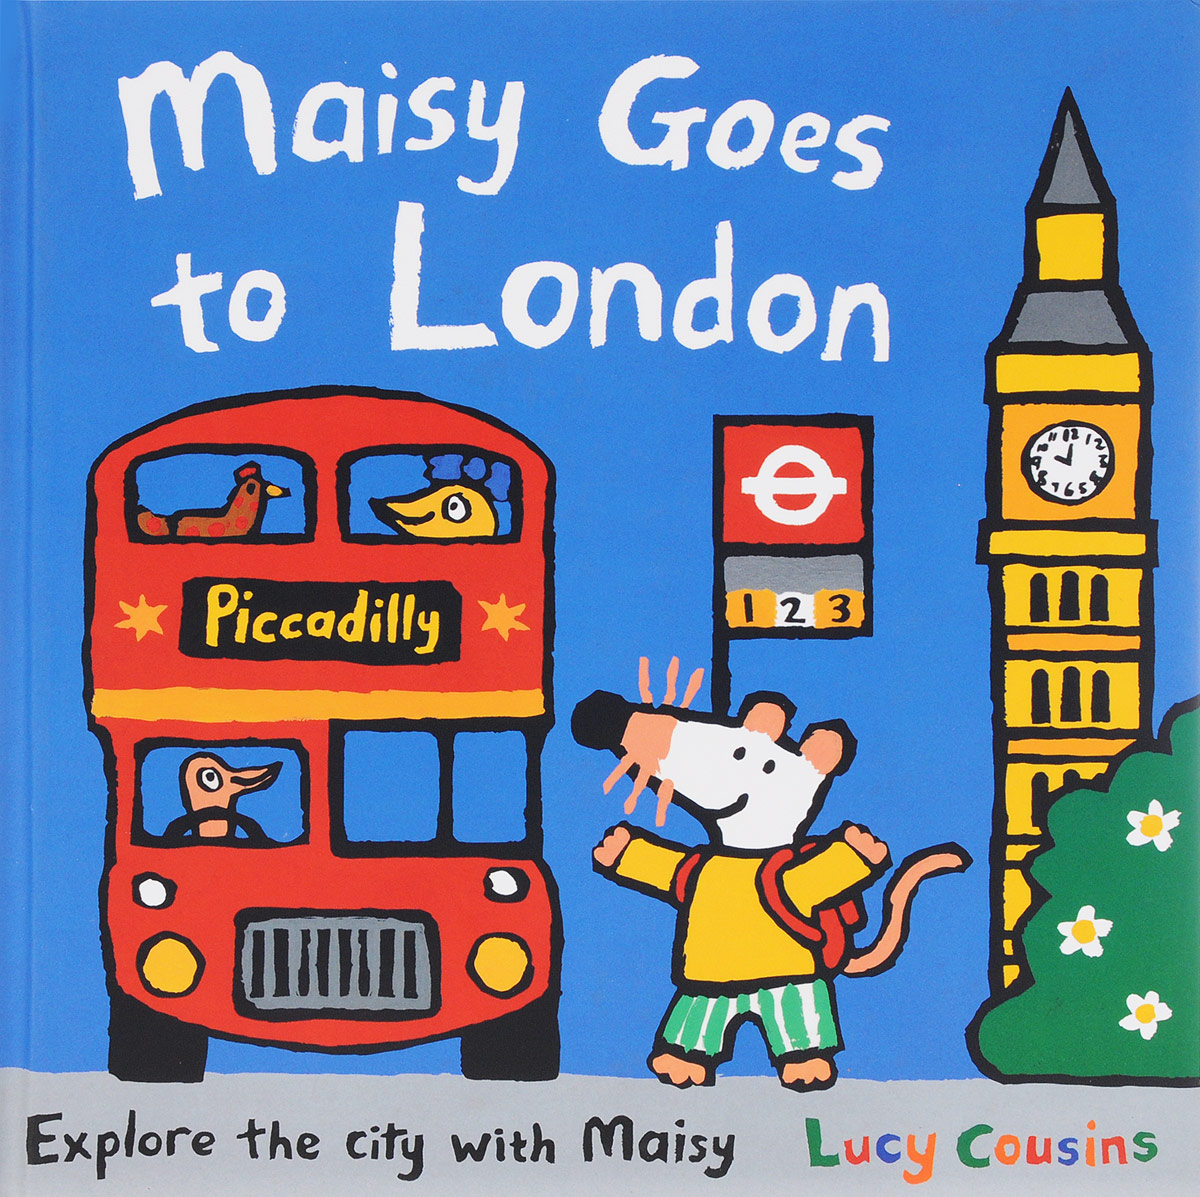 Maisy Goes to London maisy goes by plane